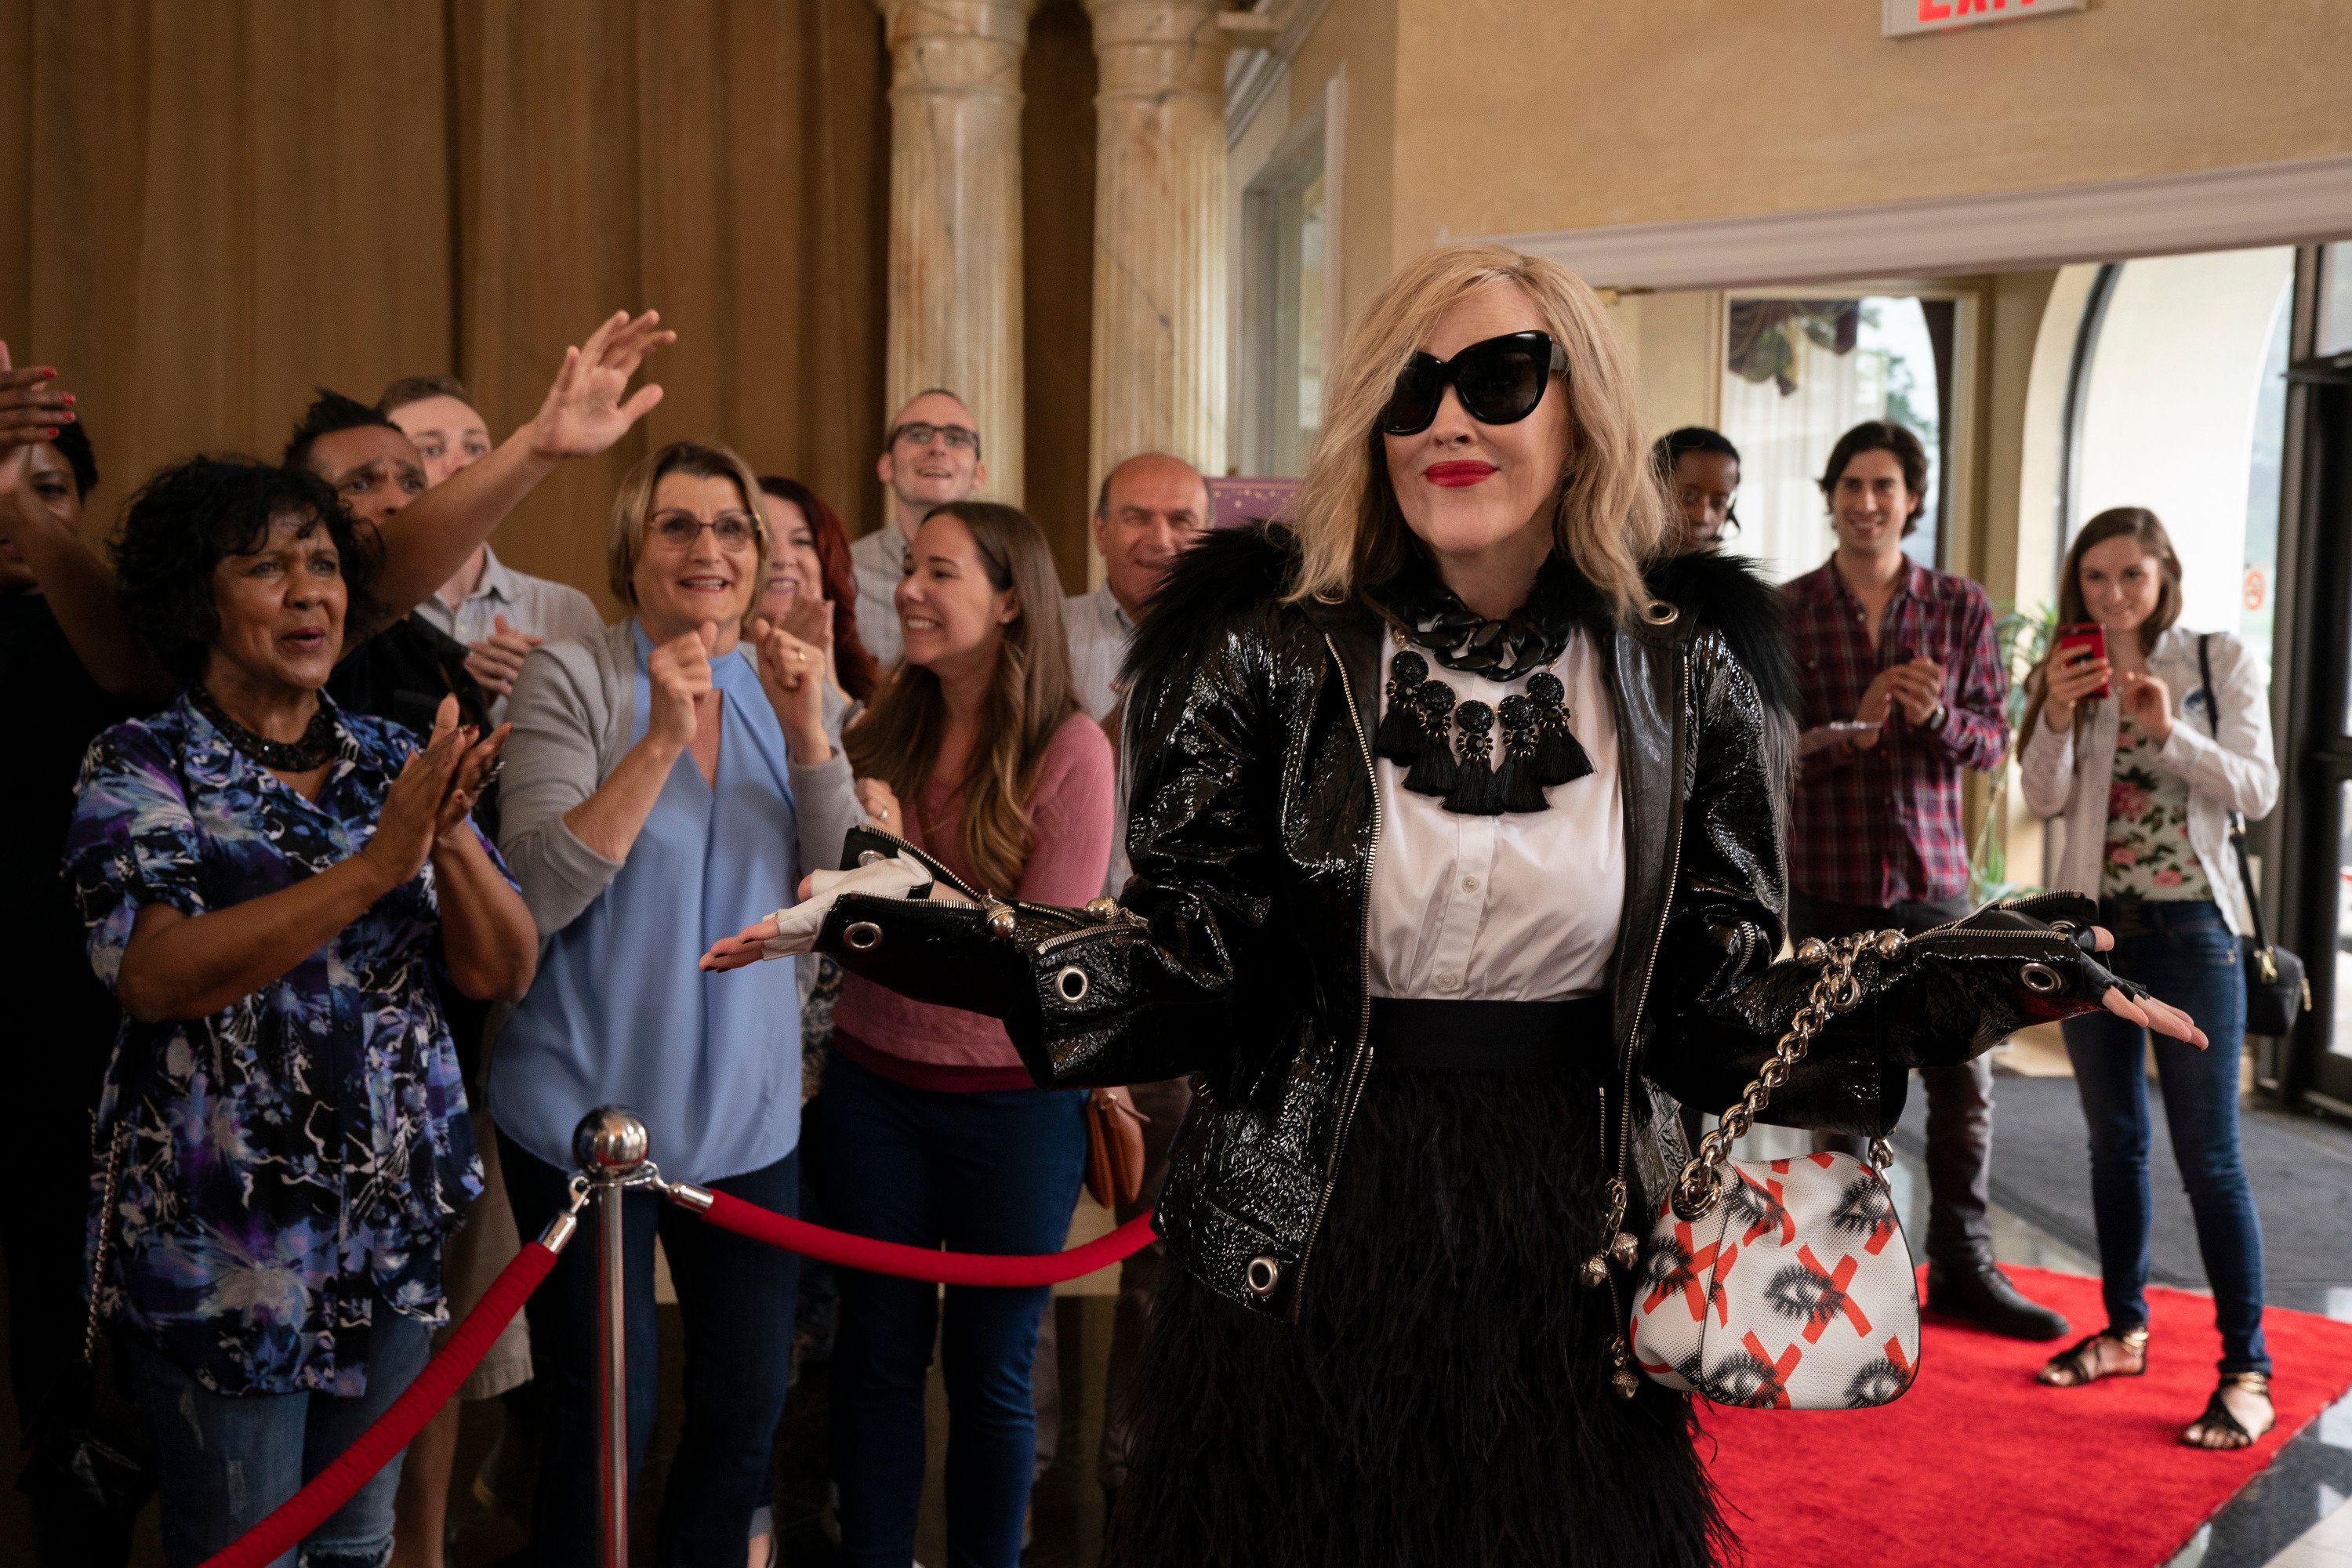 Moira poses on the red carpet while adoring fans admire her from behind a velvet rope